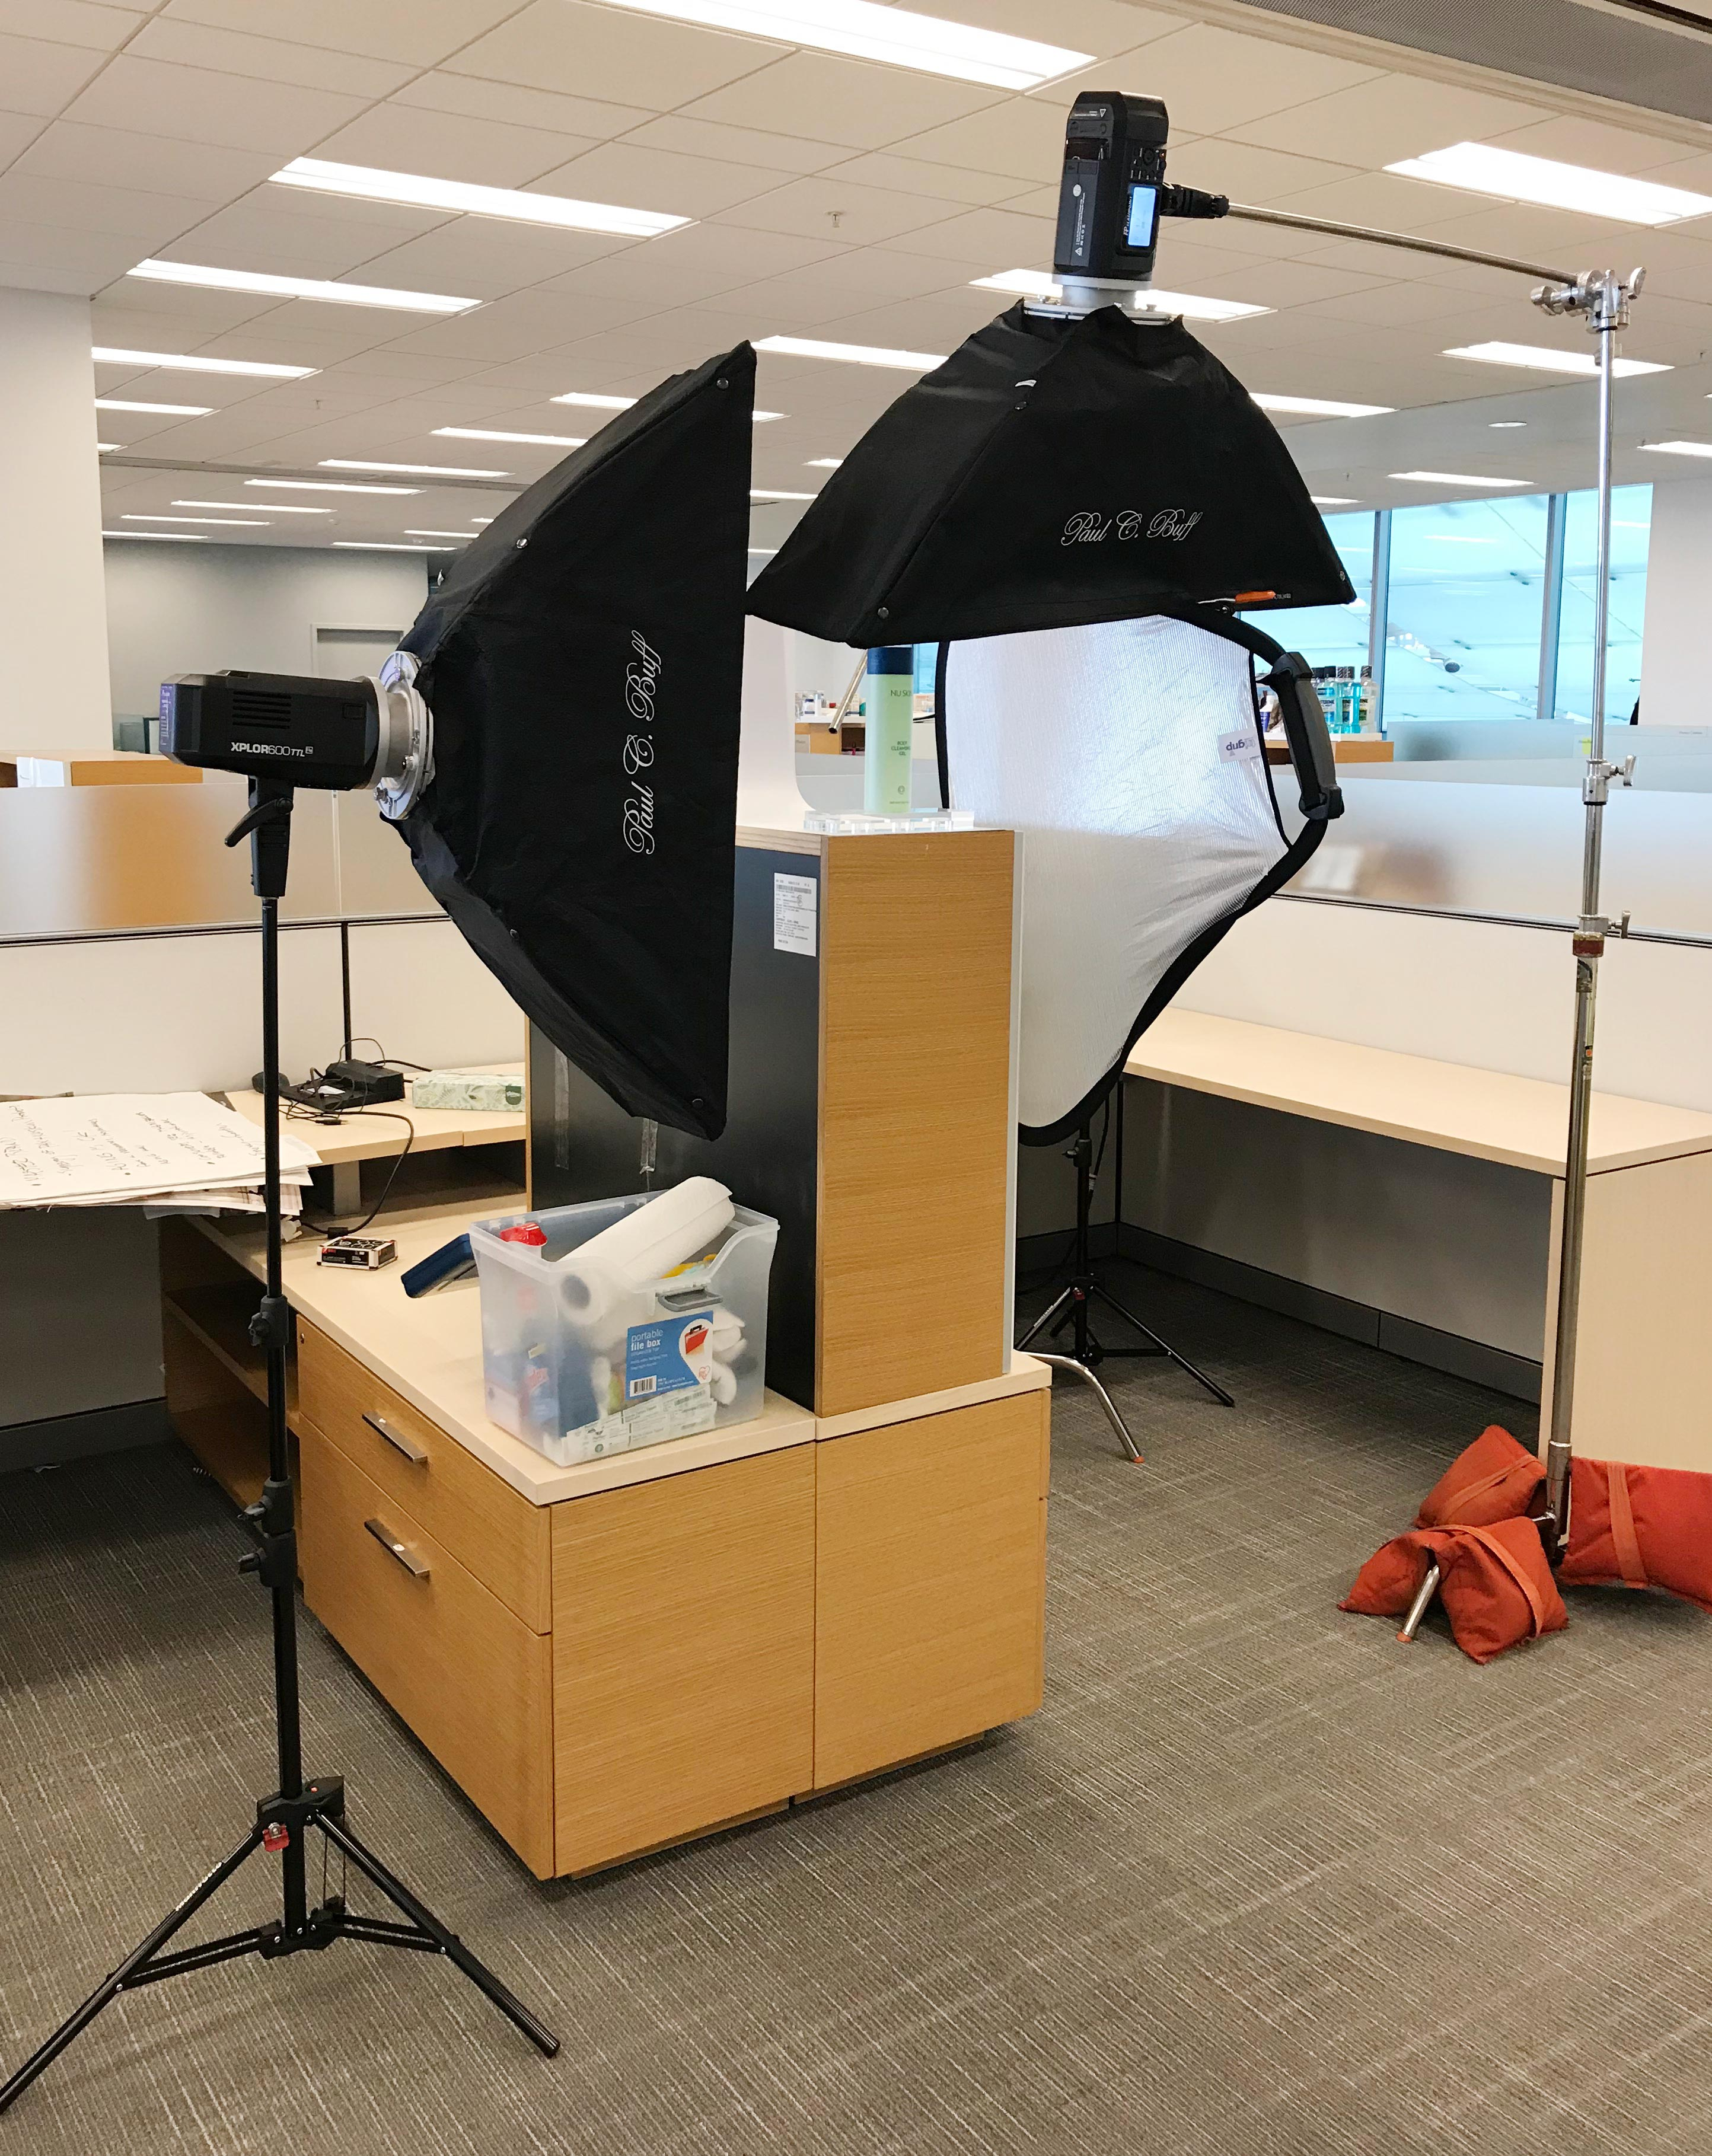 I went through several lighting setups with strip lights, reflectors, and umbrellas